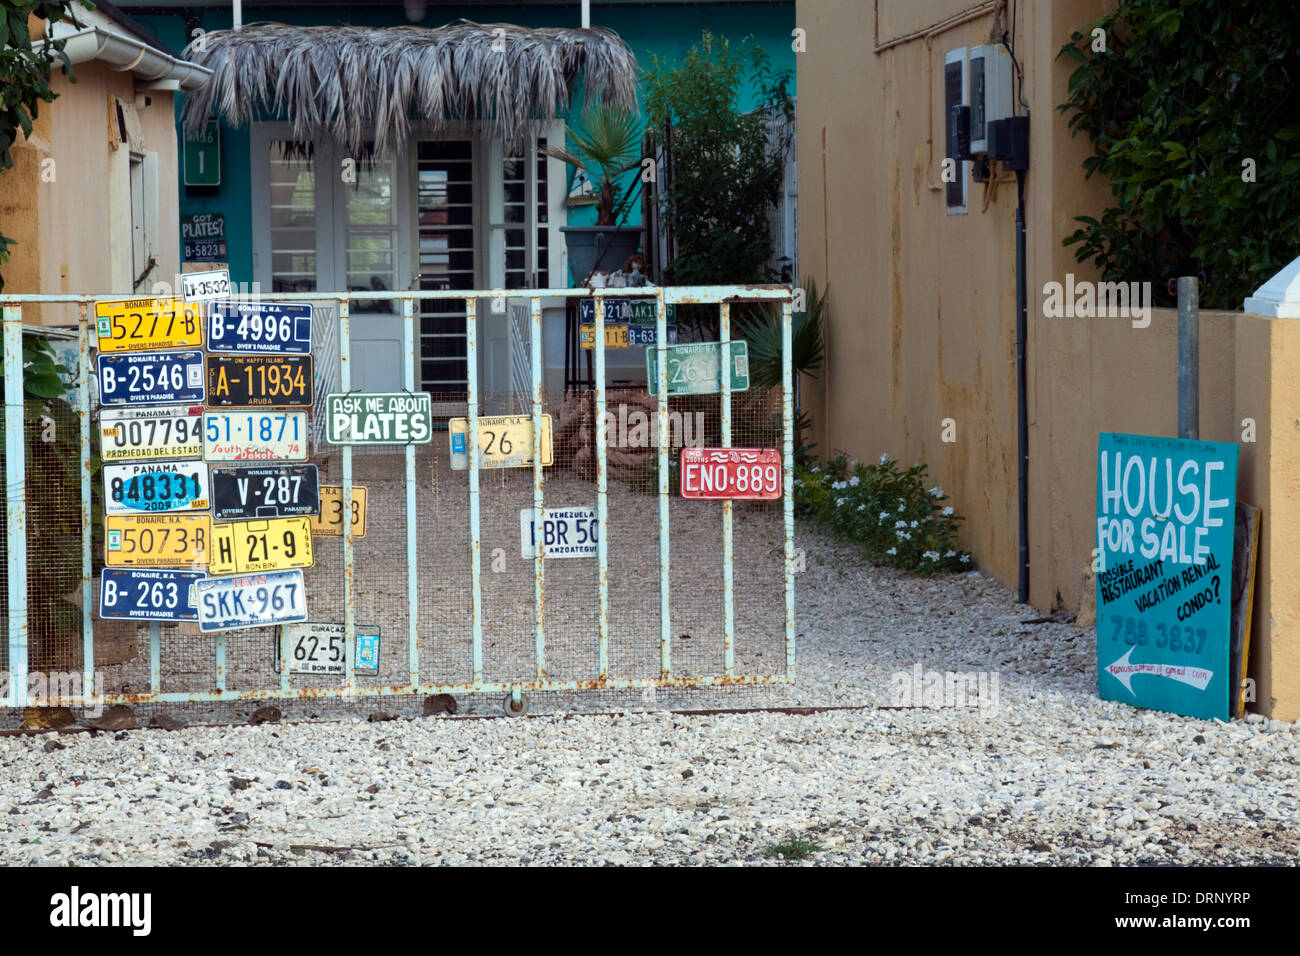 House selling car number plates from across the world in Kralendijk, Bonaire - Stock Image